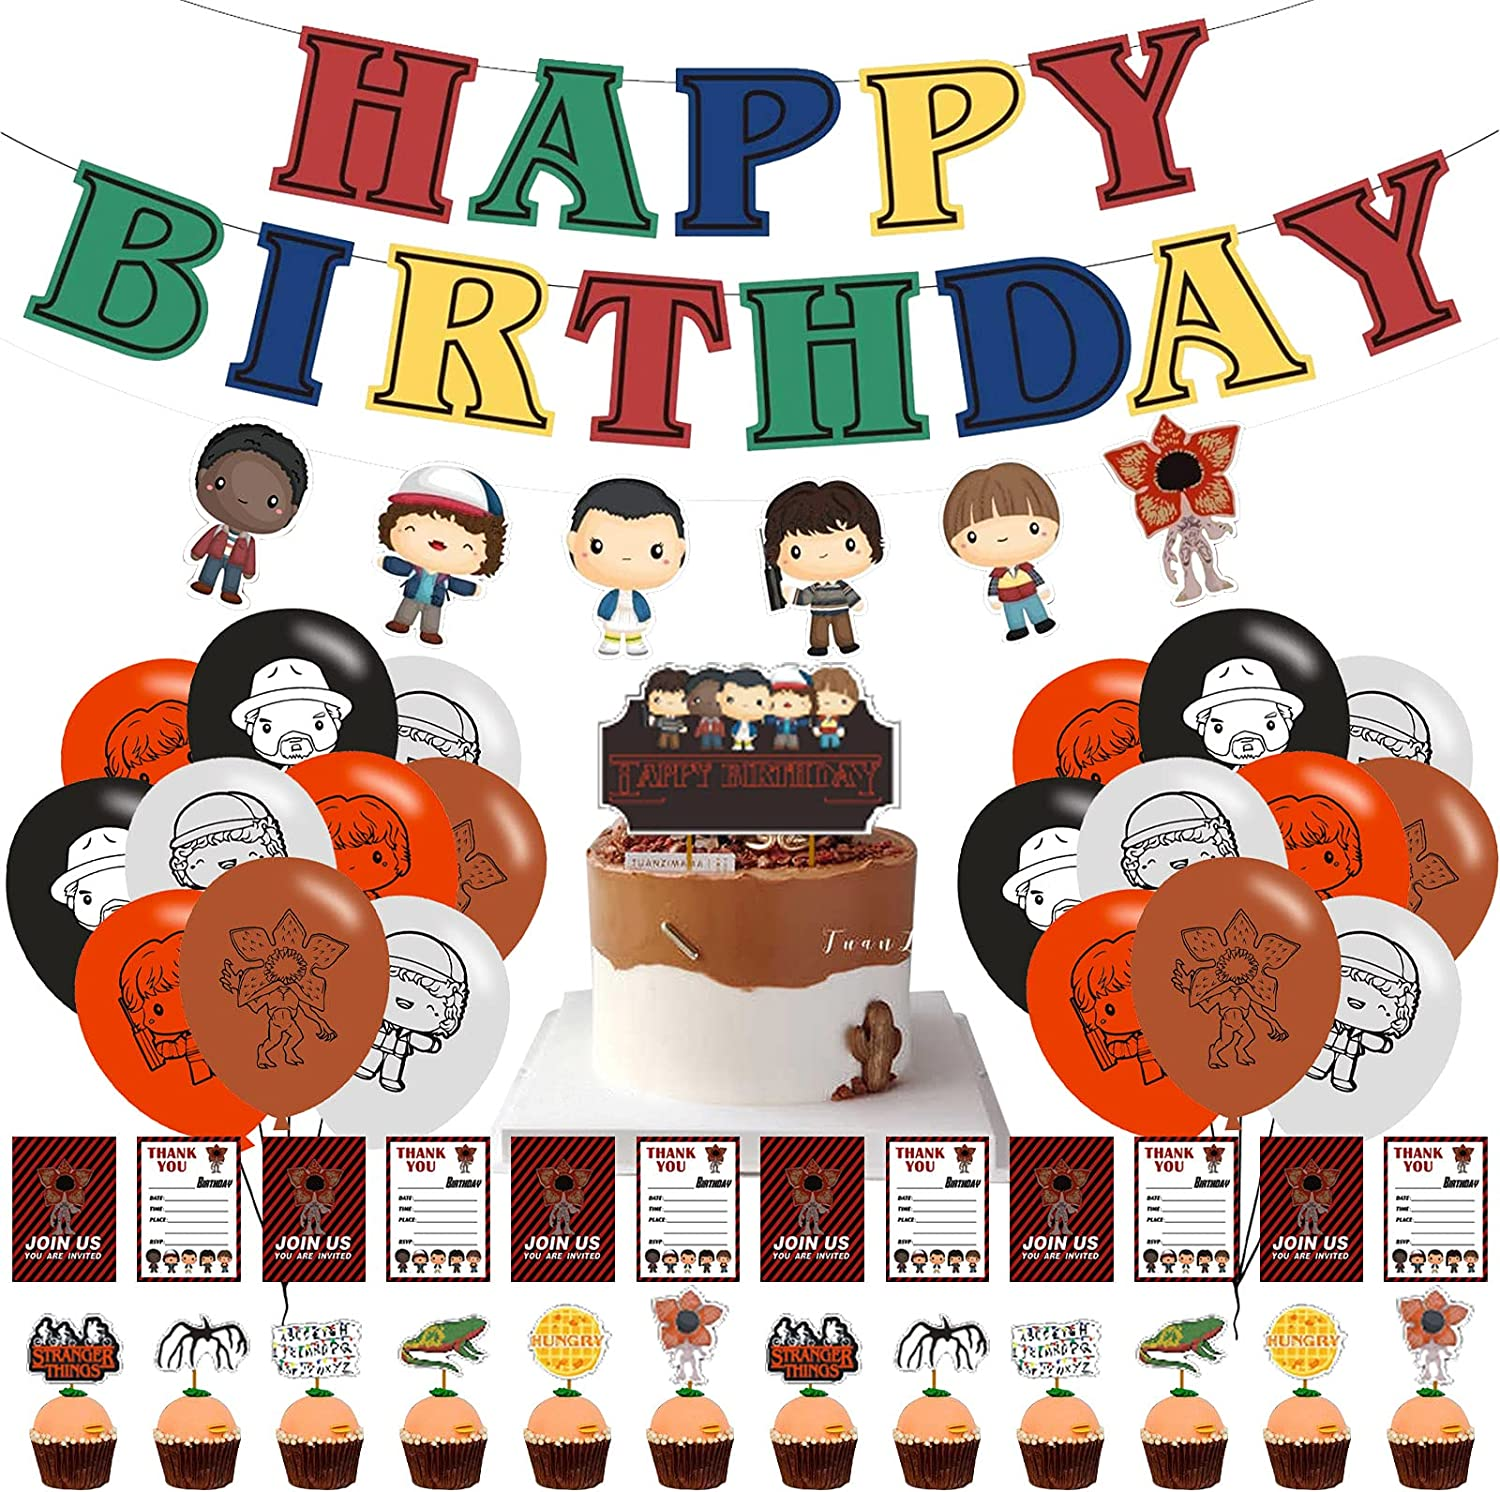 Birthday Party Supplies For Stranger Things,Stranger Things Themed Birthday Party Supplies Set,Happy Birthday Banner, Cake Topper, Cupcake Toppers, Balloons for Kids Party Decorations